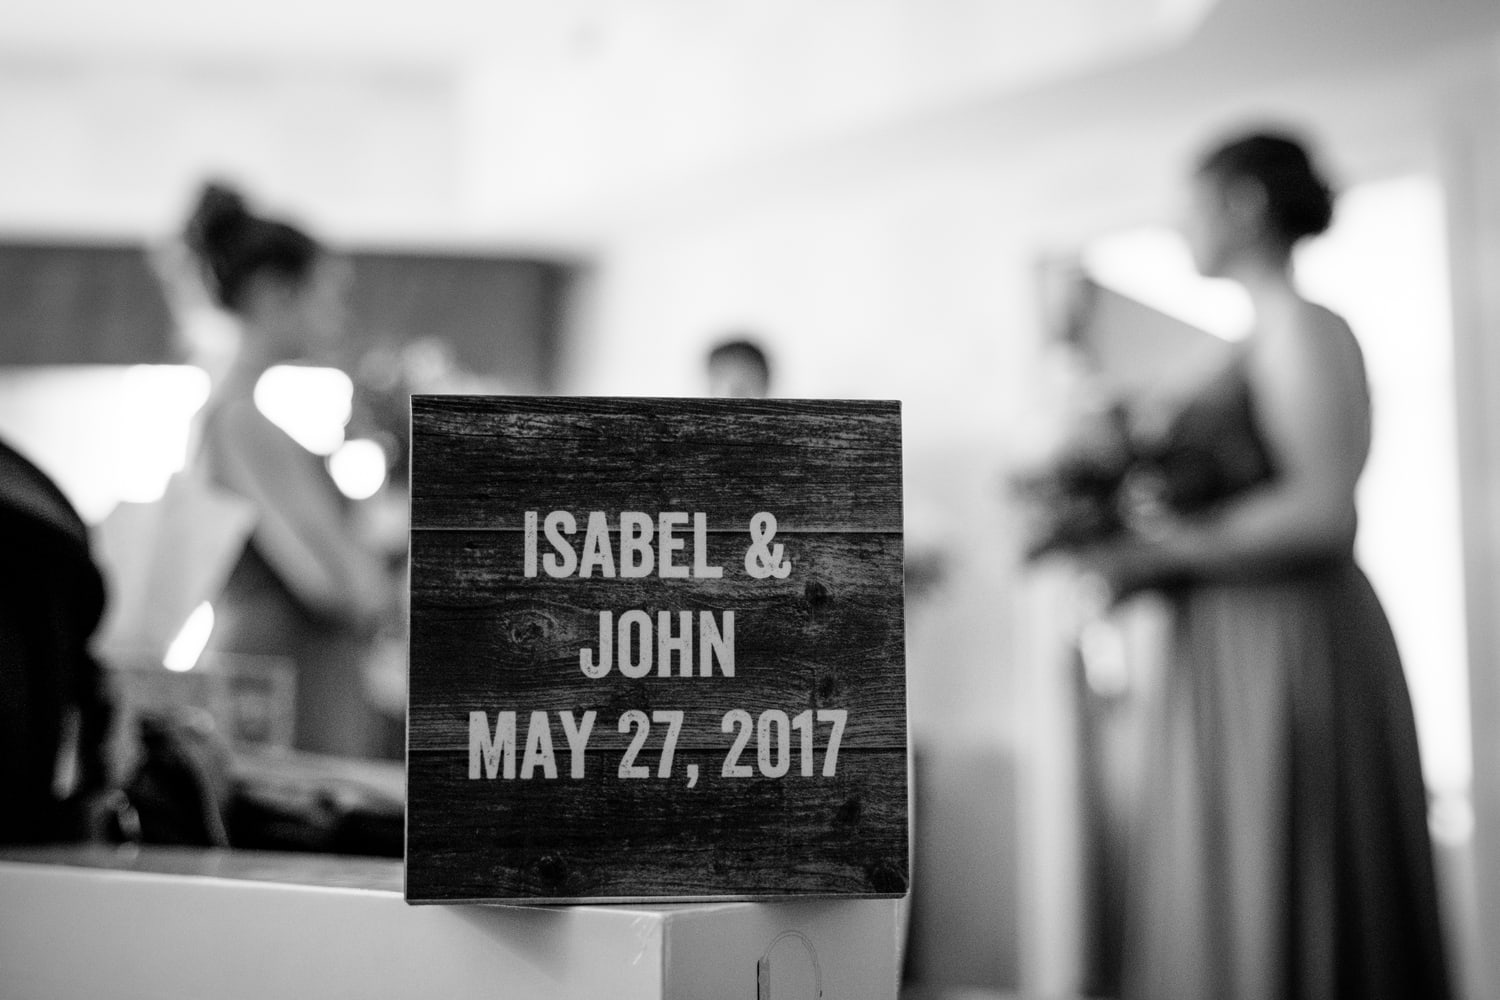 Isabel and John - May 27, 2017 // Photo by Leia Smethurst